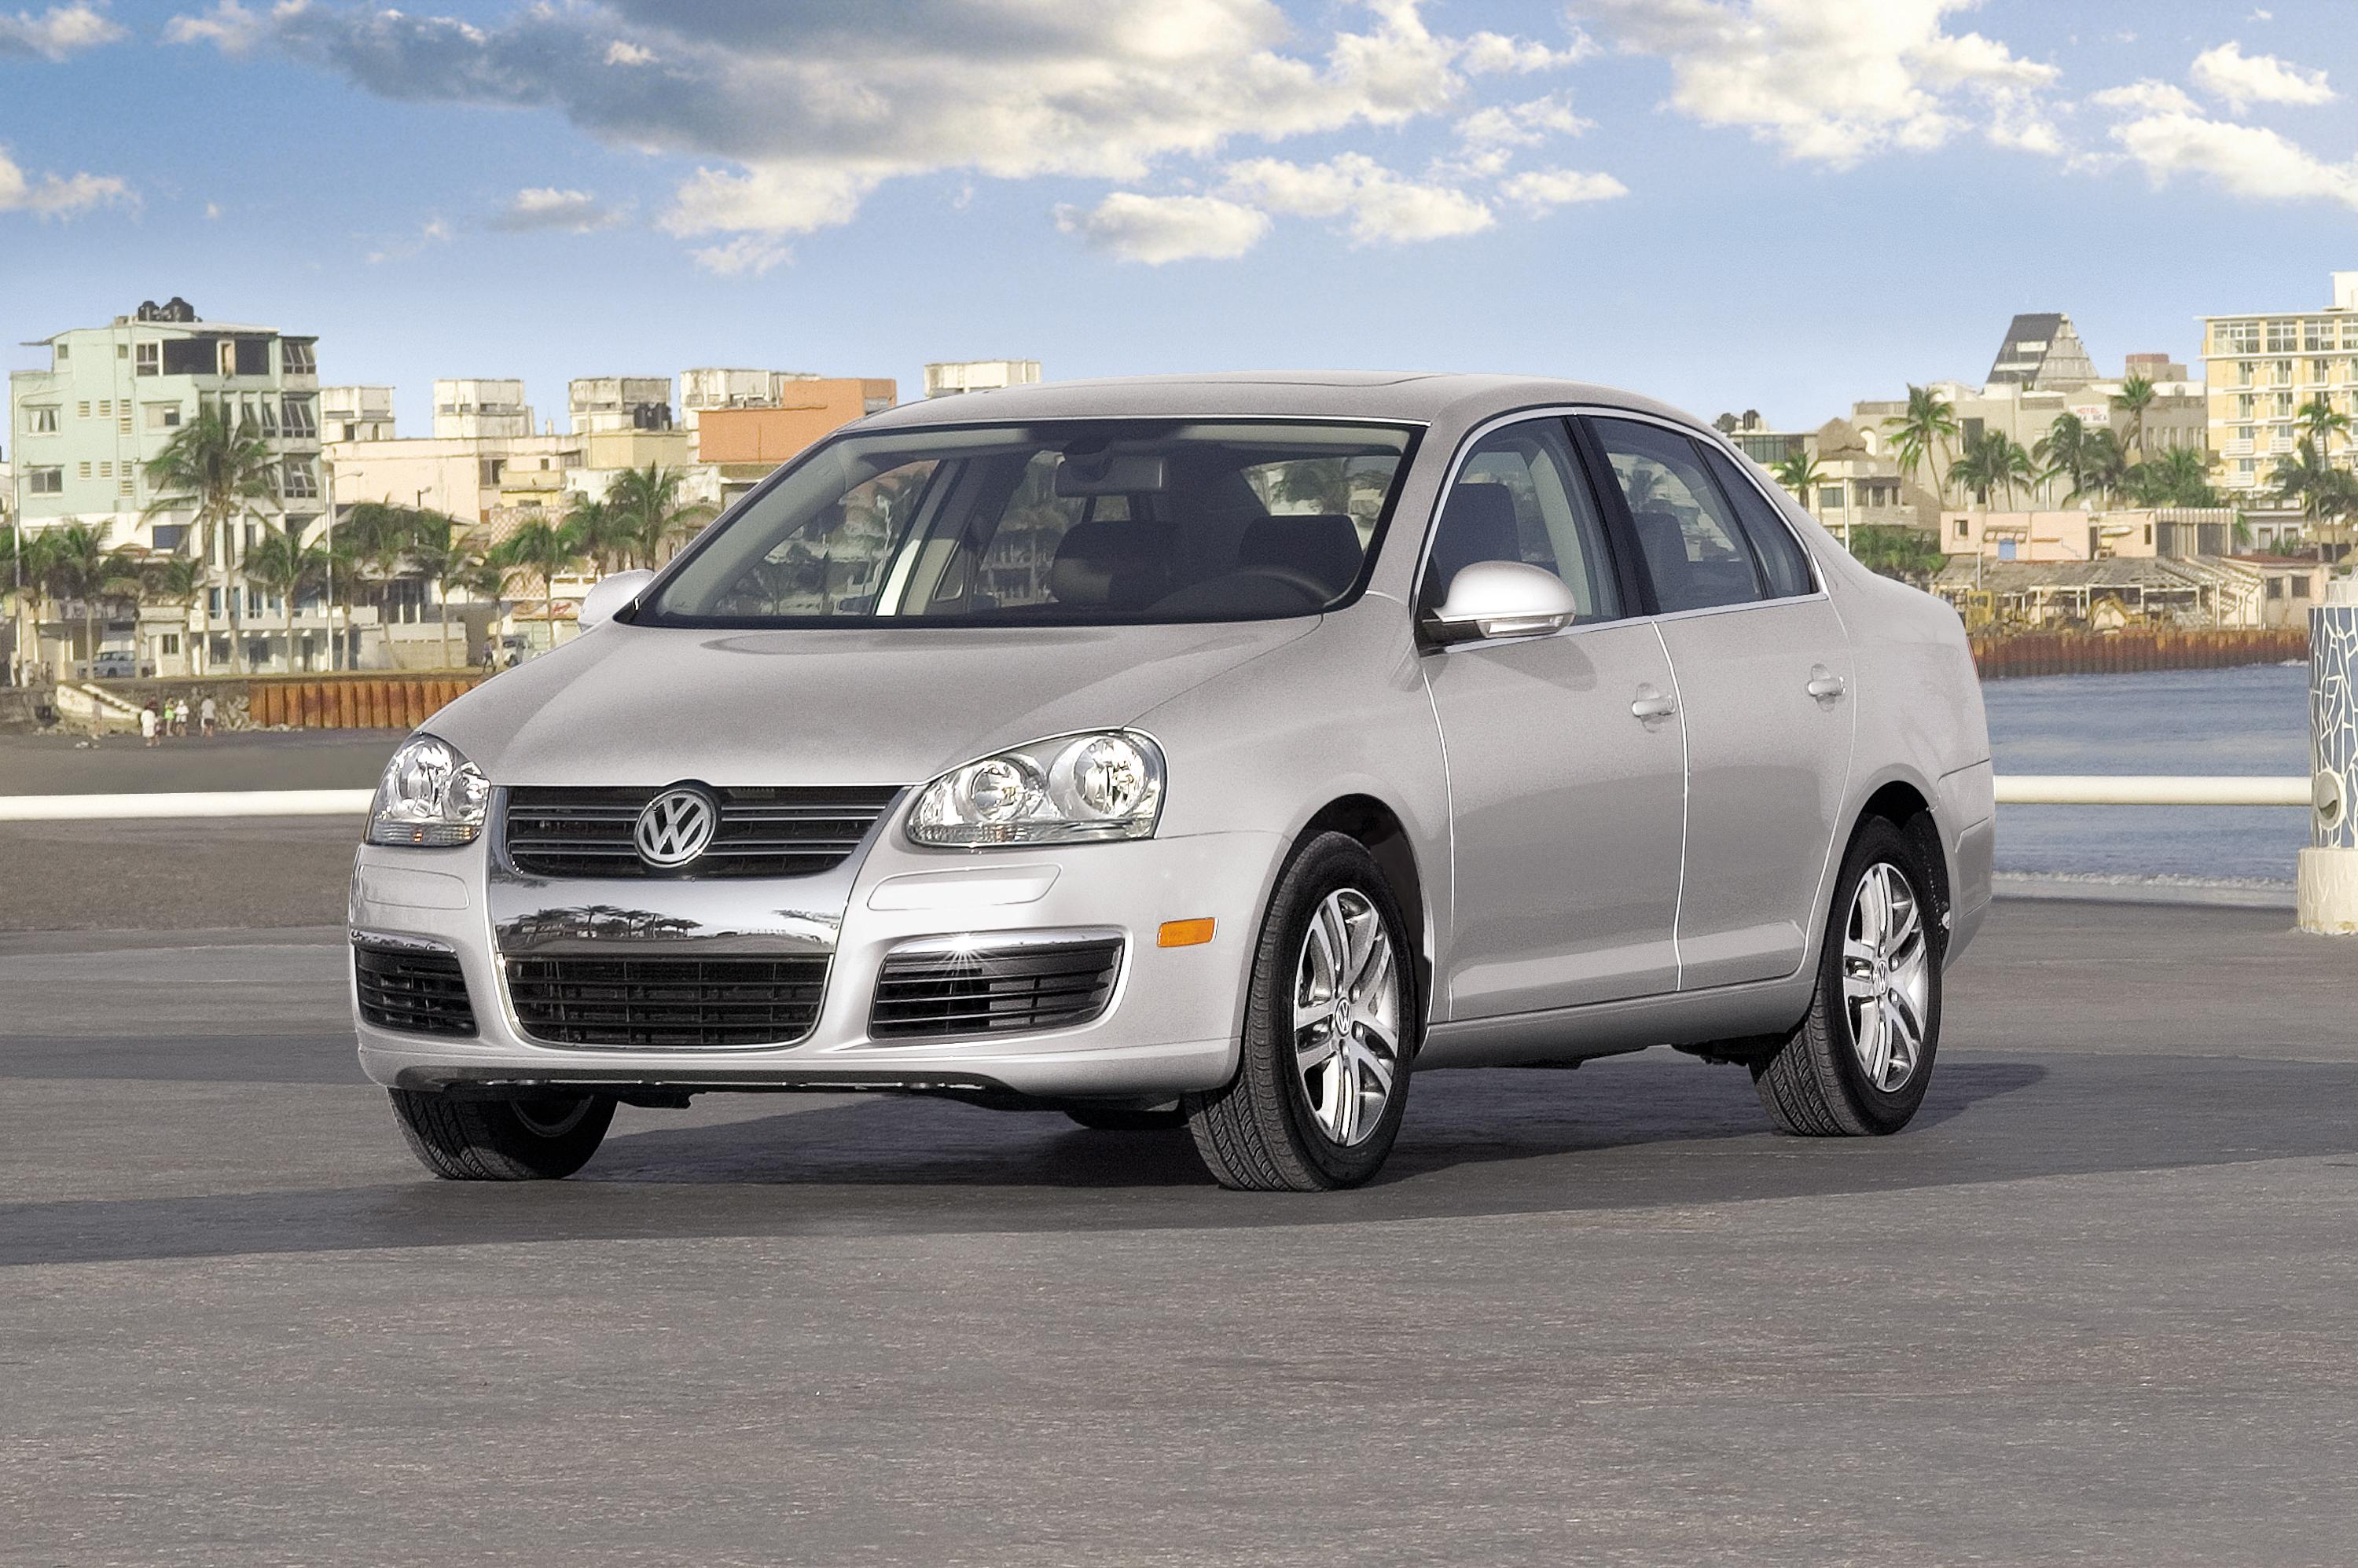 volkswagon vw jetta golf bora 4 cylinder diesel engine with unit injector shop manual 2005 2008